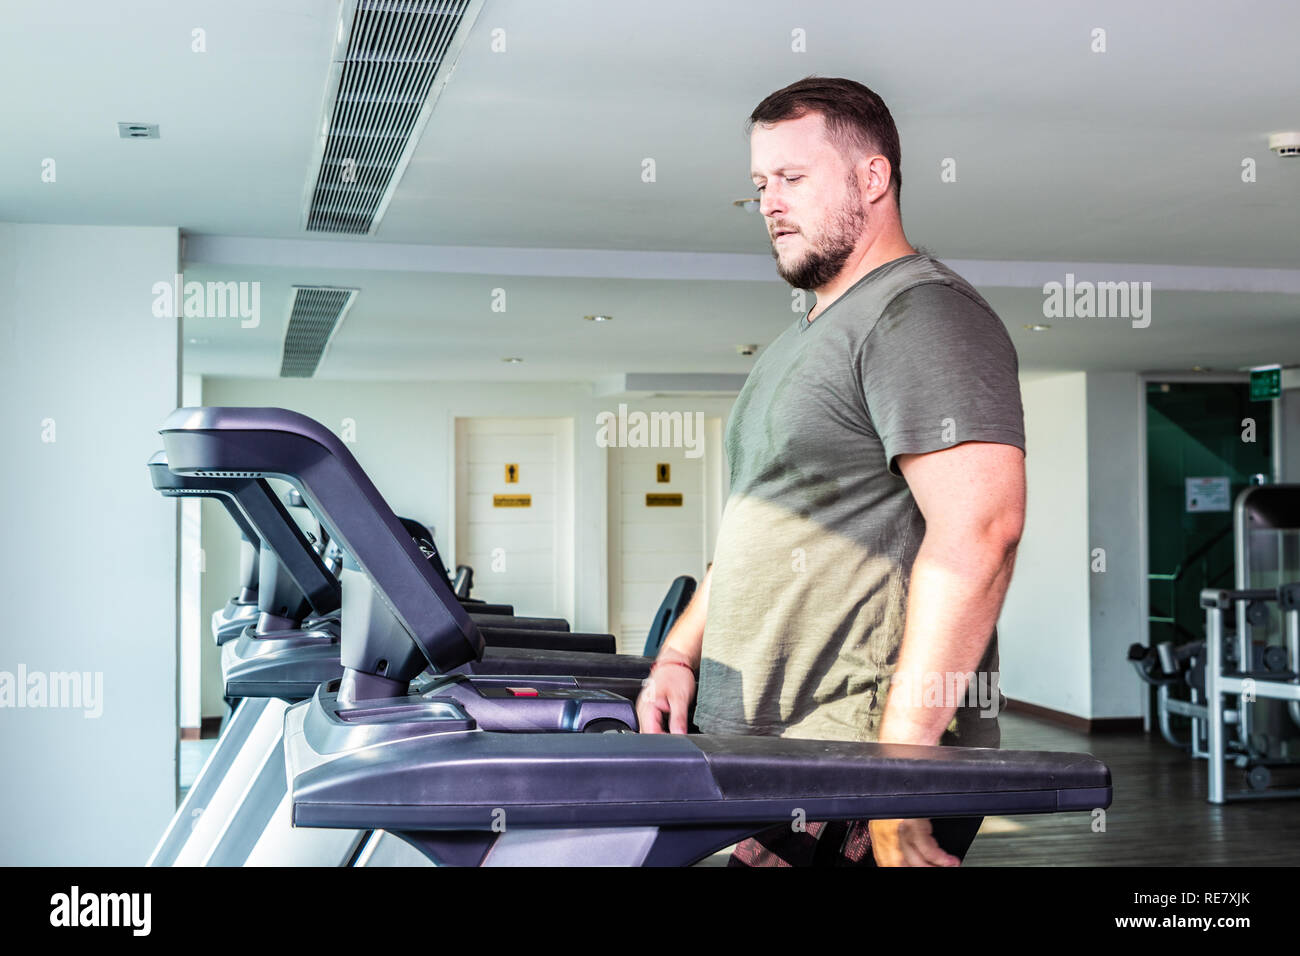 Sweating chubby man walking on running track, warming up on gym treadmill - Stock Image